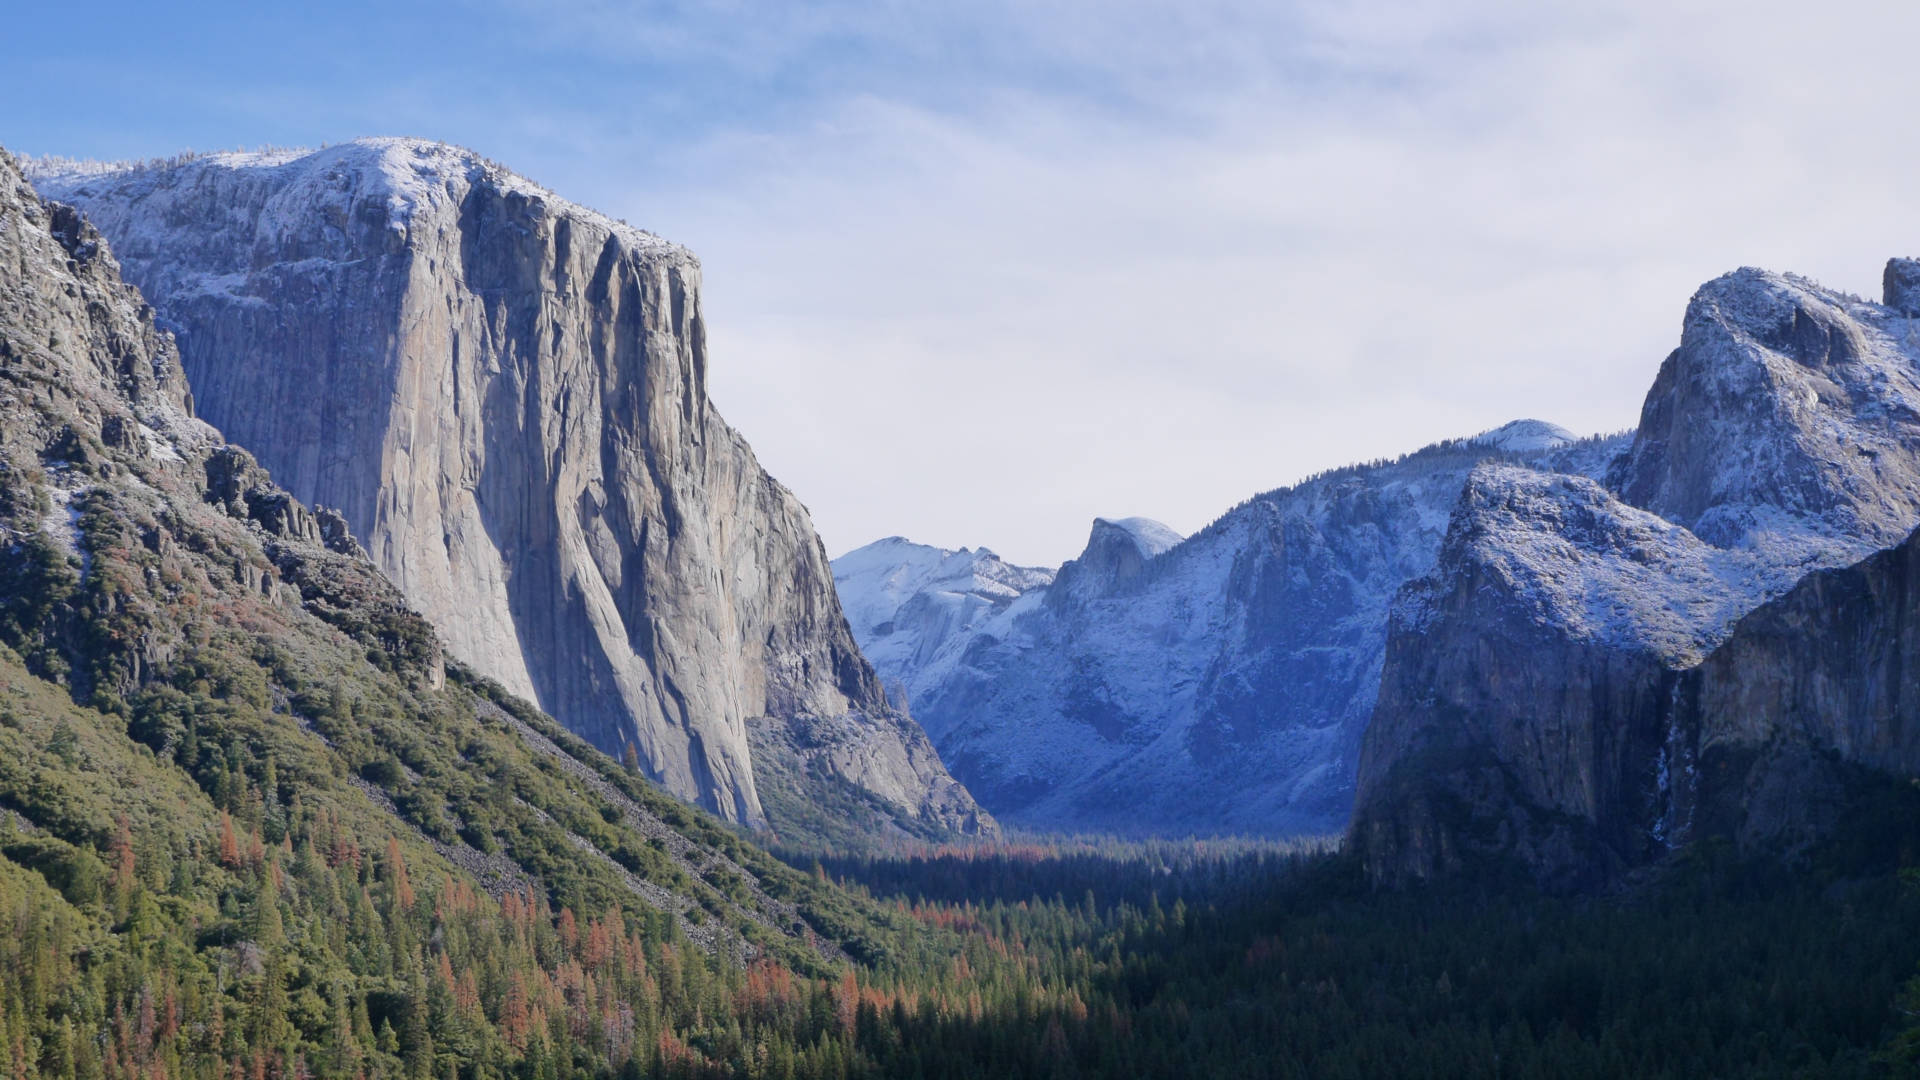 The first snow of winter coating El Capitan and the surrounding mountains in Yosemite National Park, California.  Joseph Pontecorvo/@ THIRTEEN Productions LLC